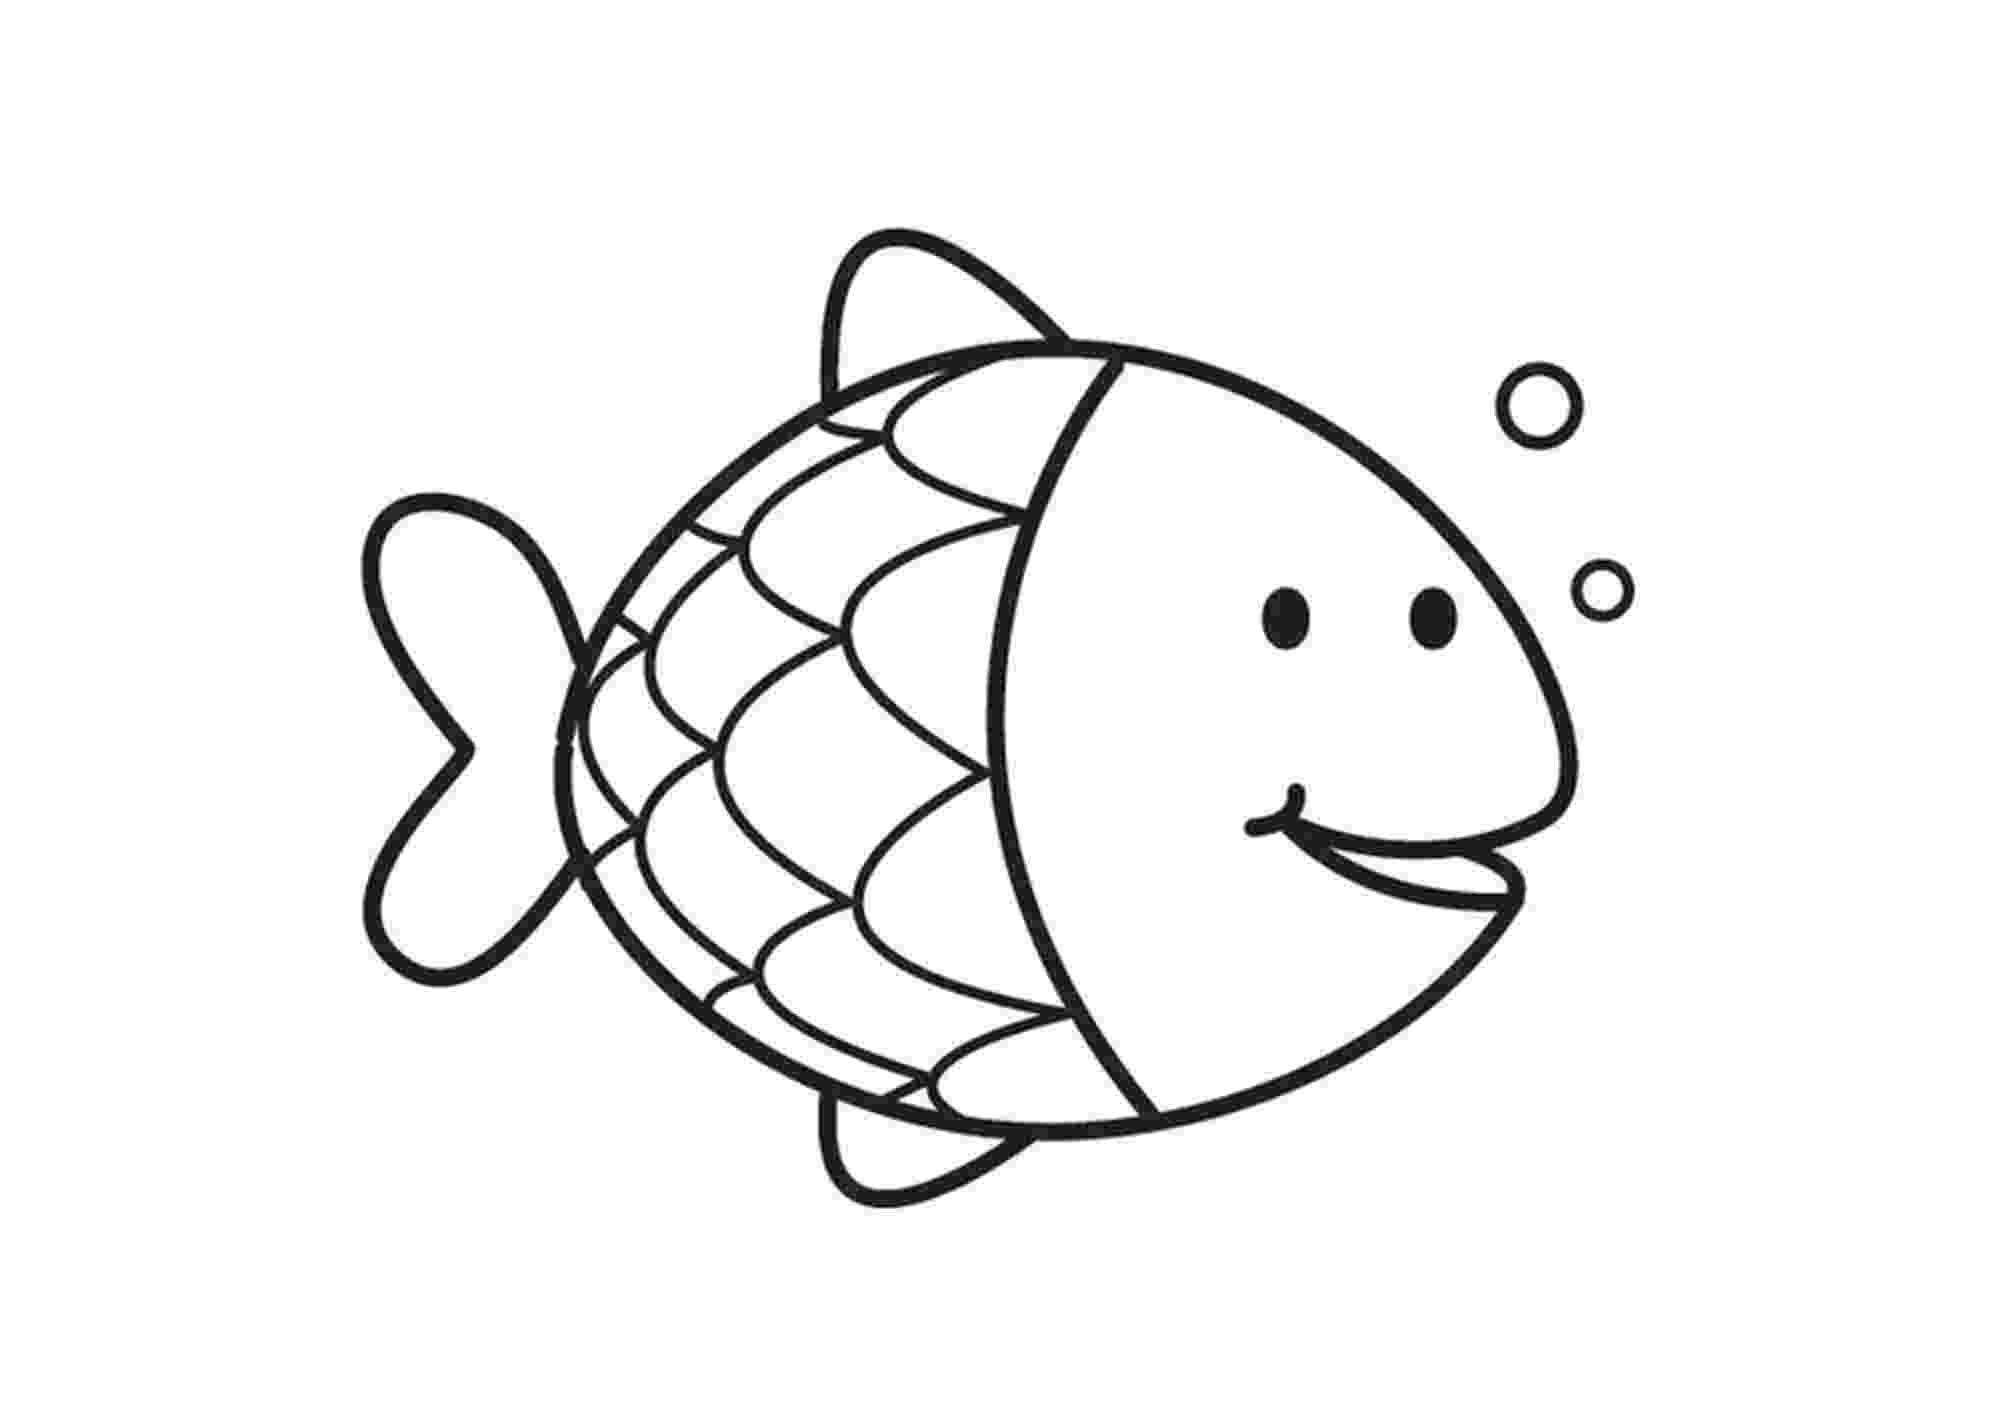 coloring picture fish fish coloring pages for kids preschool and kindergarten fish picture coloring